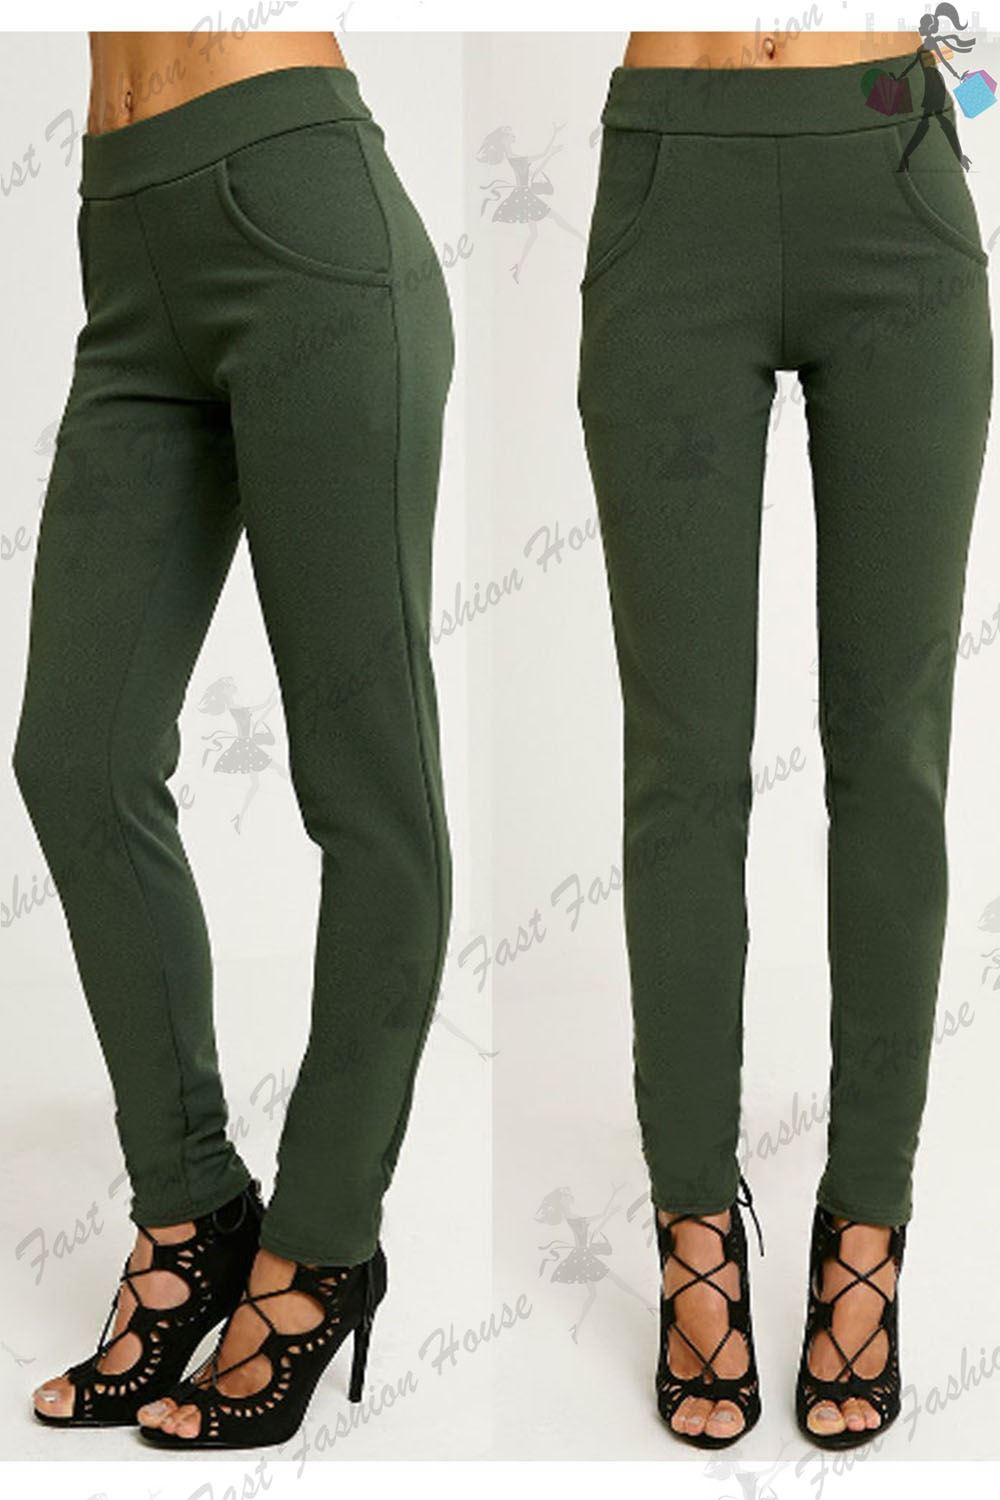 Wonderful &quotOver 40 Million Women Carry Some Form Of Selfdefense Tool On A Daily  Unlike Nearly All Athletic Pants, Alexo Has Seven Pockets, Enough For Not Only A Wallet, But For Firearms And Mace Too While